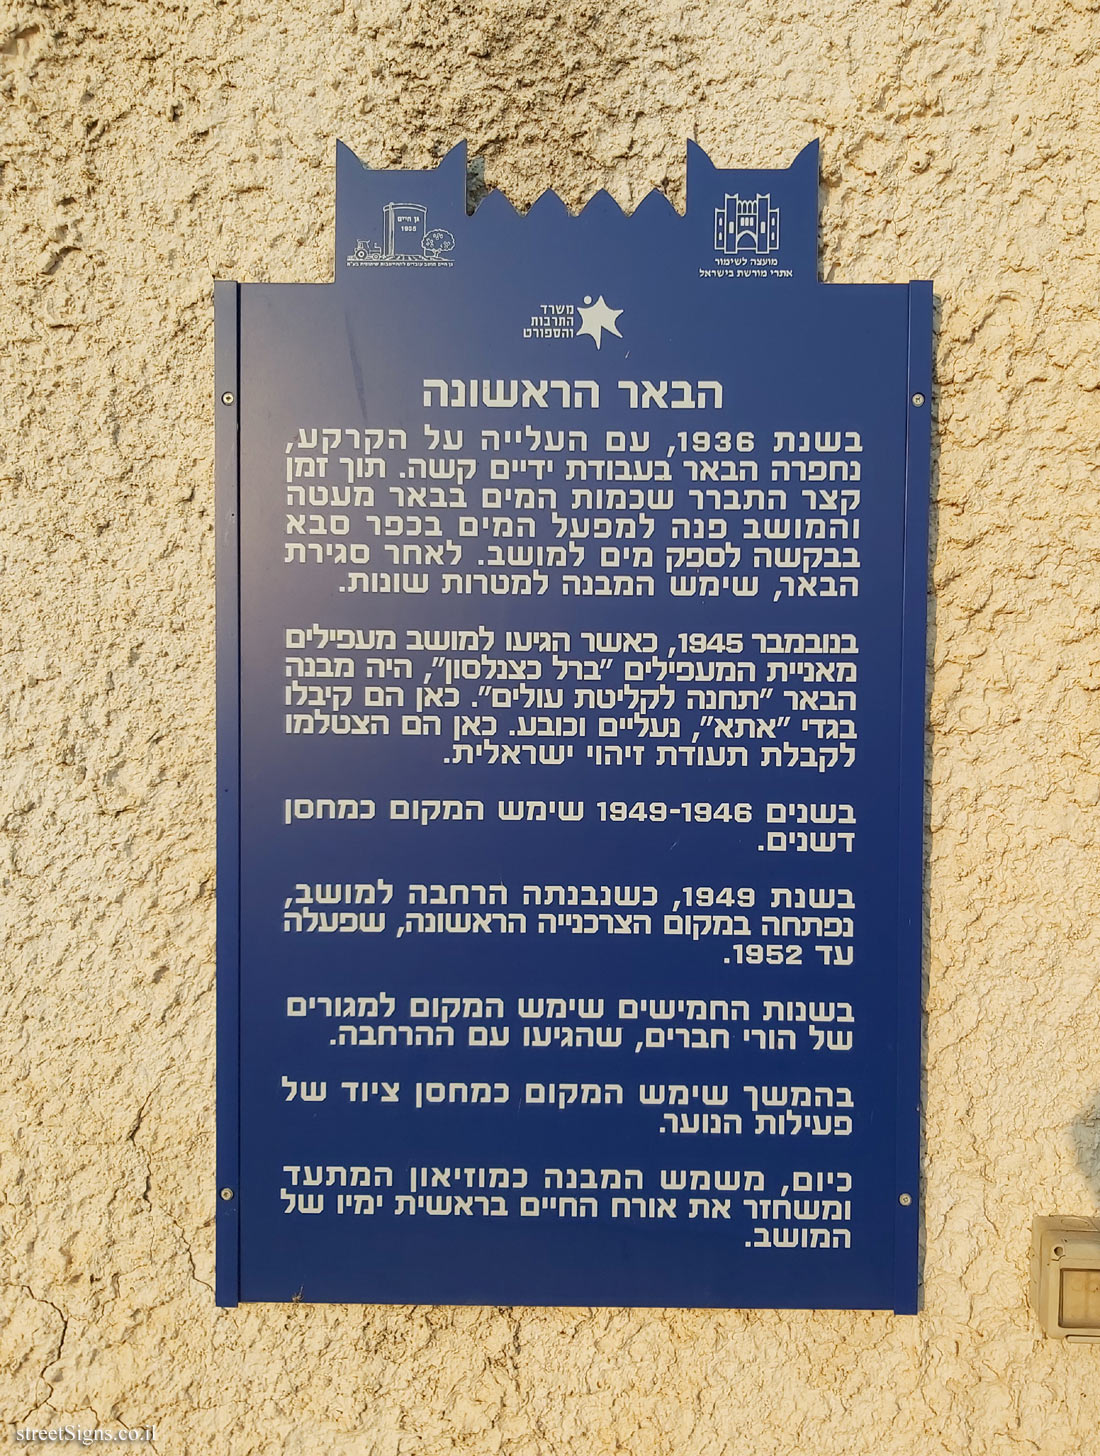 Gan Haim - Heritage Sites in Israel - The first well